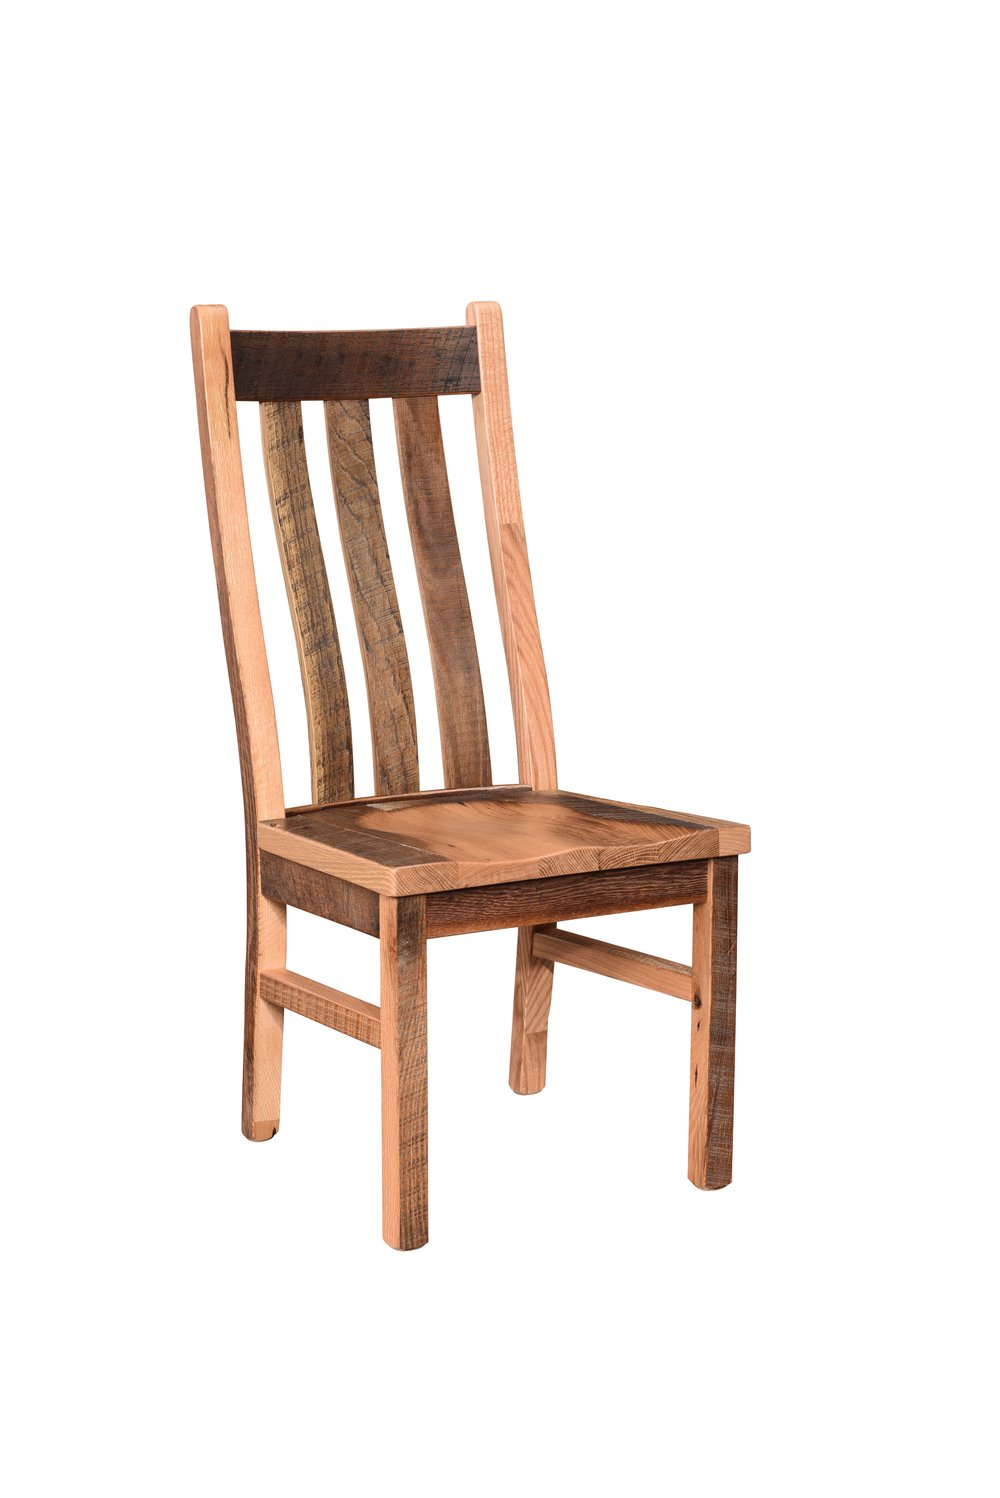 239-BSC Branson Side Chair - Sept2017Cat-p66 Top.jpg